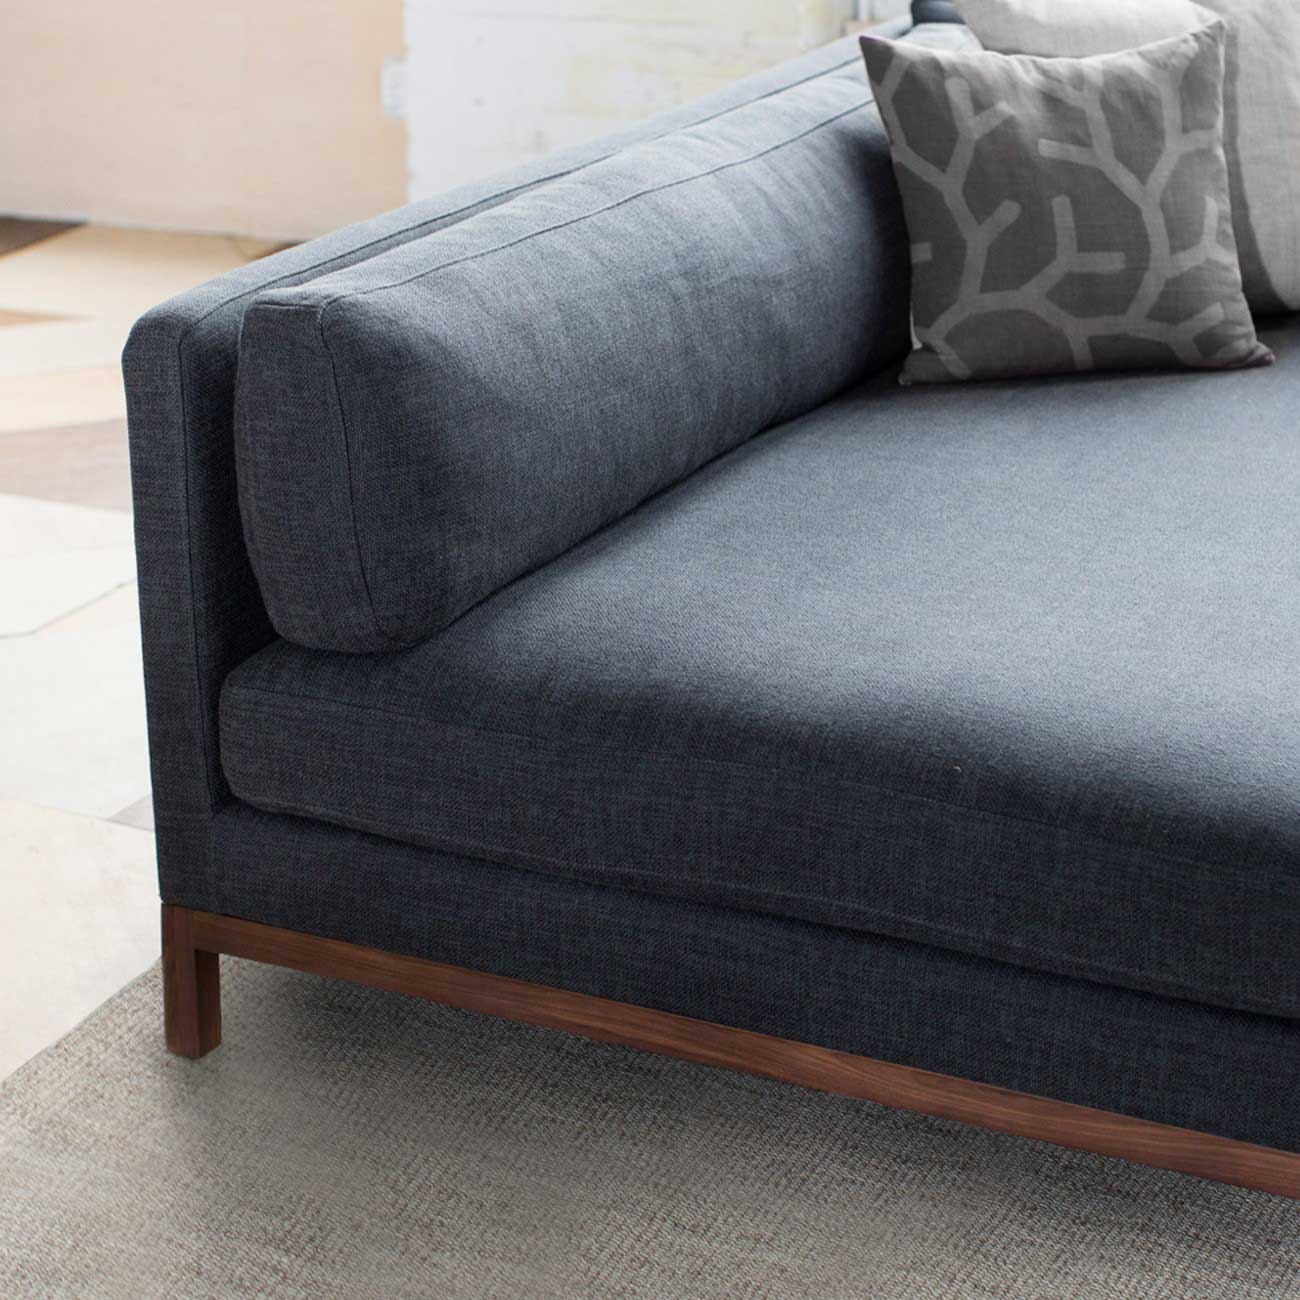 Interior Define: Jasper Sofa